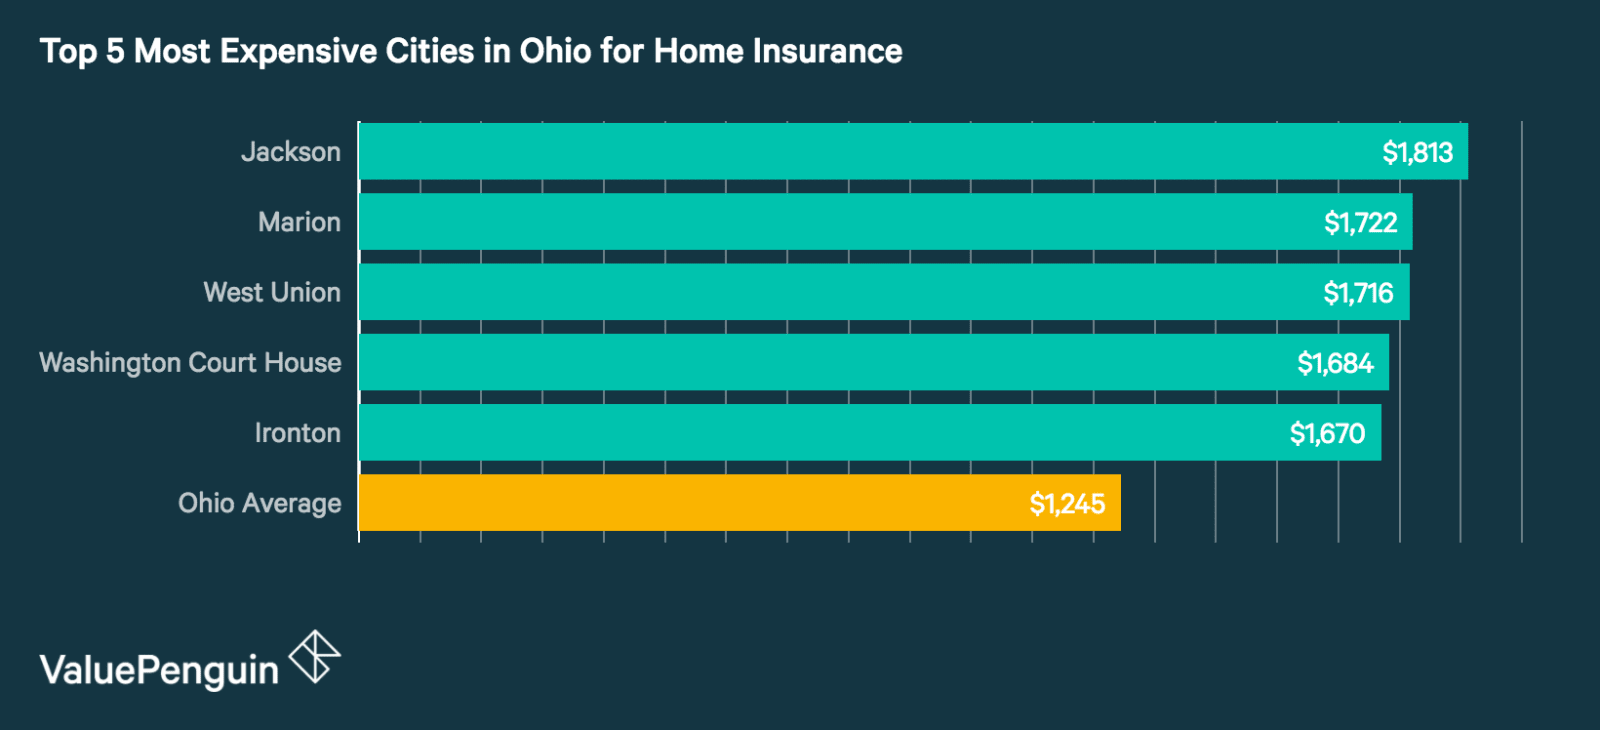 Top 5 Most Expensive Cities in Ohio for Homeowners Insurance